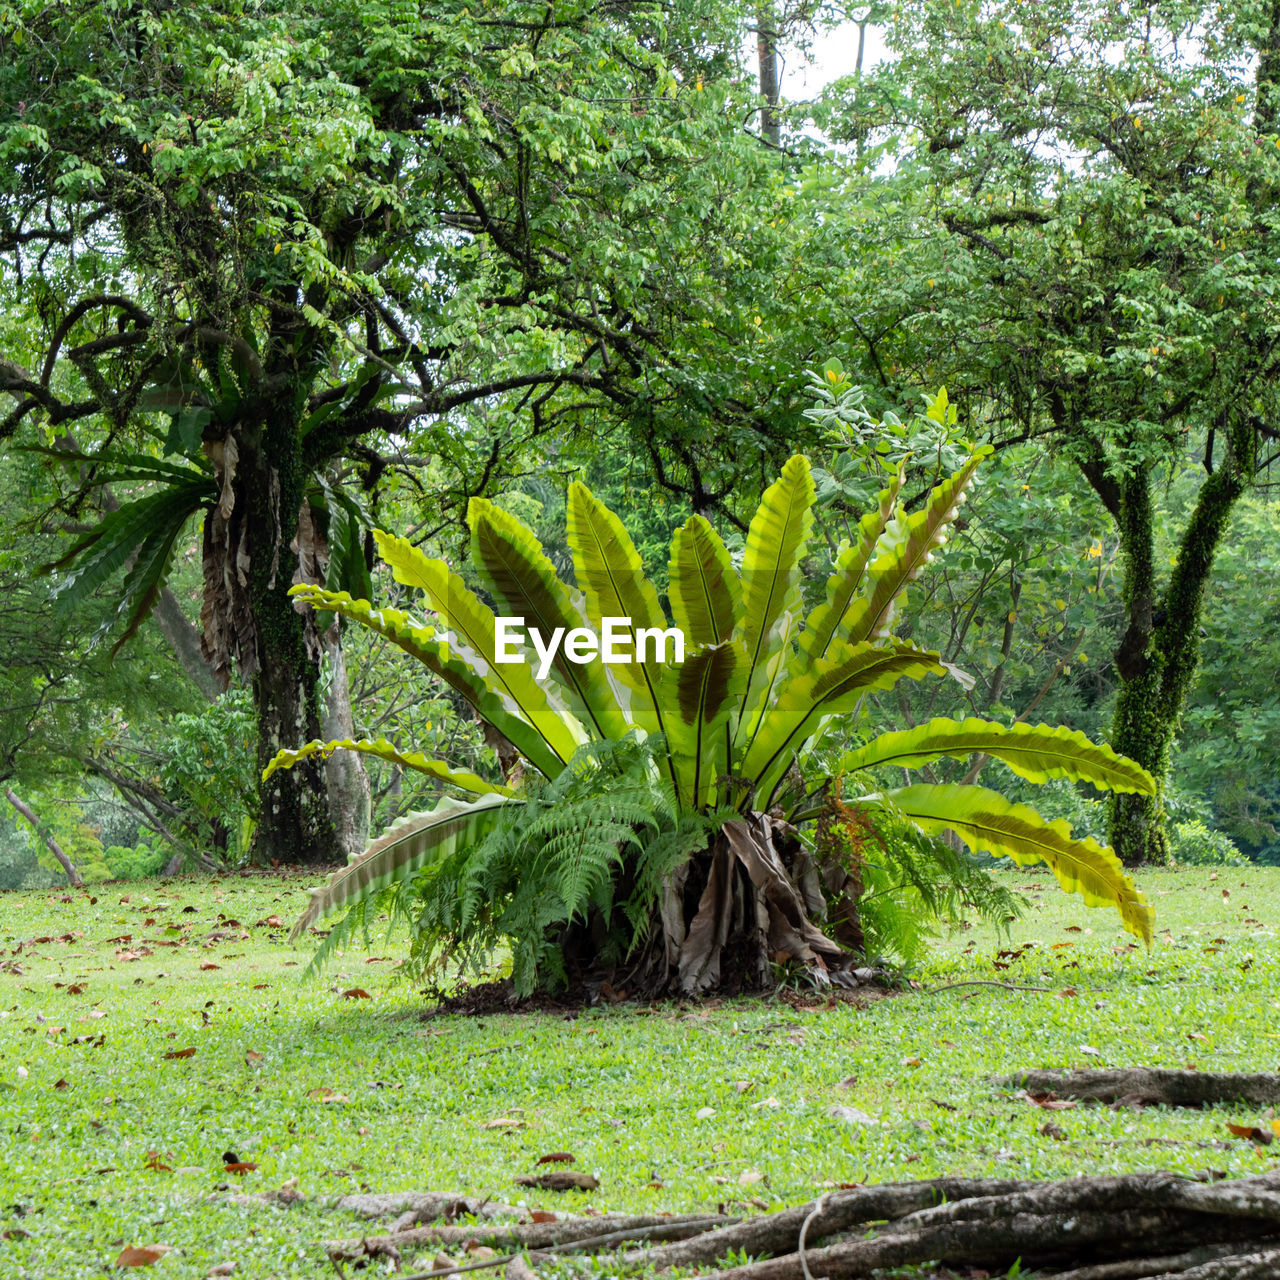 plant, tree, no people, nature, land, food and drink, day, food, growth, fruit, banana, foliage, lush foliage, forest, leaf, green color, field, tropical climate, plant part, beauty in nature, outdoors, ornamental garden